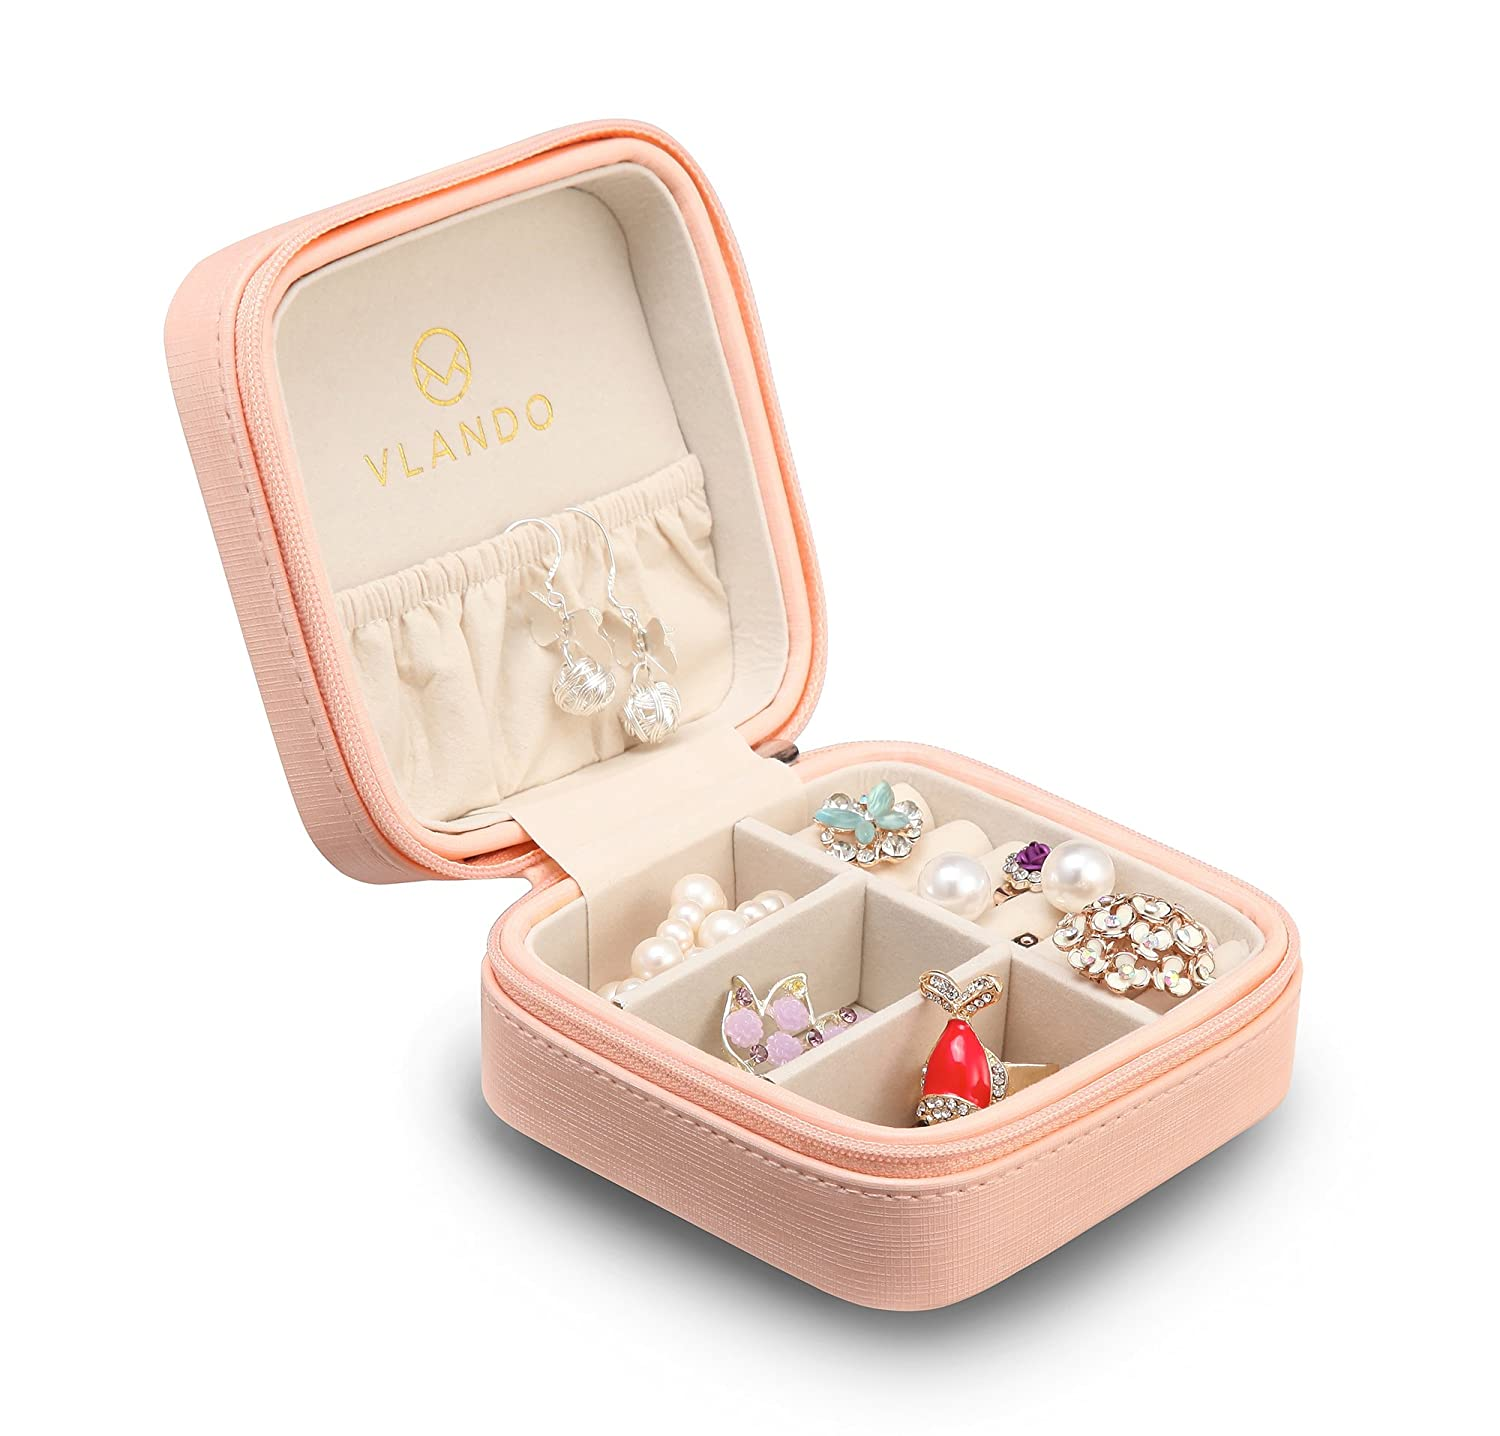 Amazoncom Vlando Macaron Small Jewelry Box Travel Storage Case